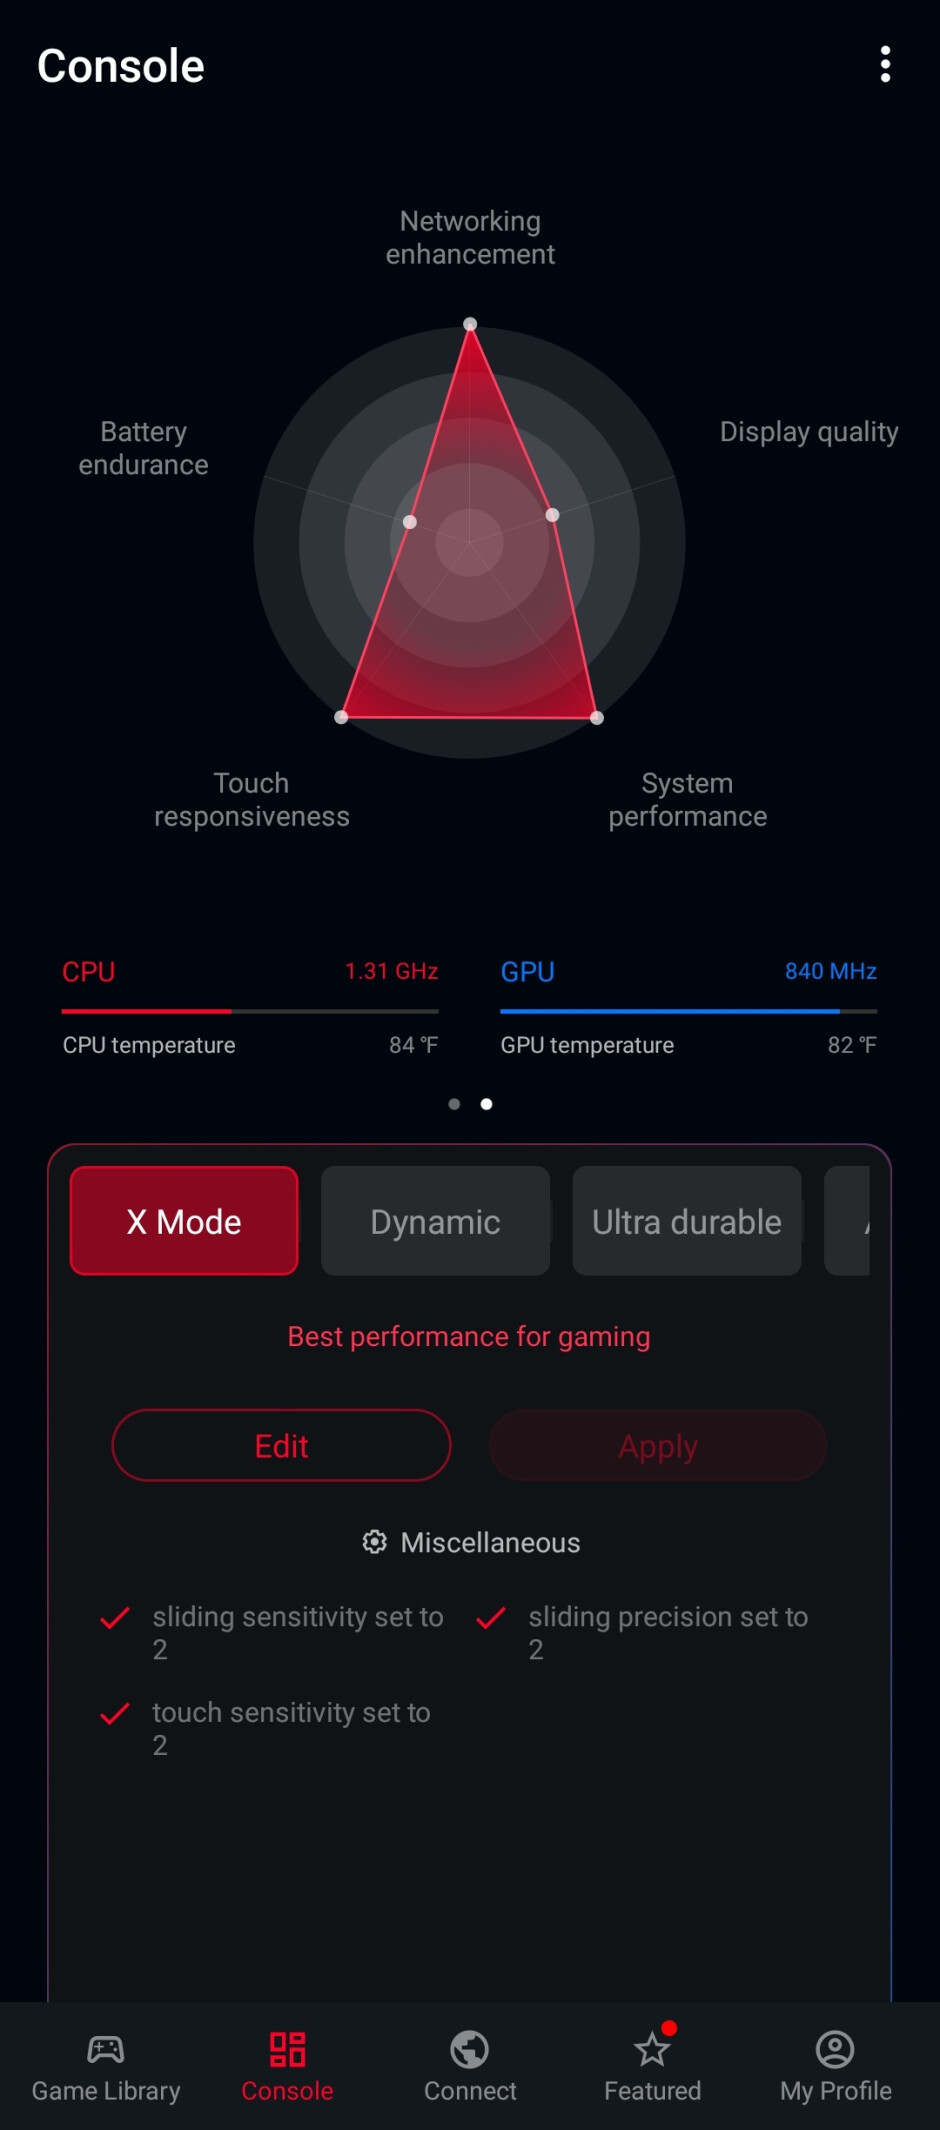 X Mode on the Asus ROG Phone 5 - Asus ROG Phone 5 review